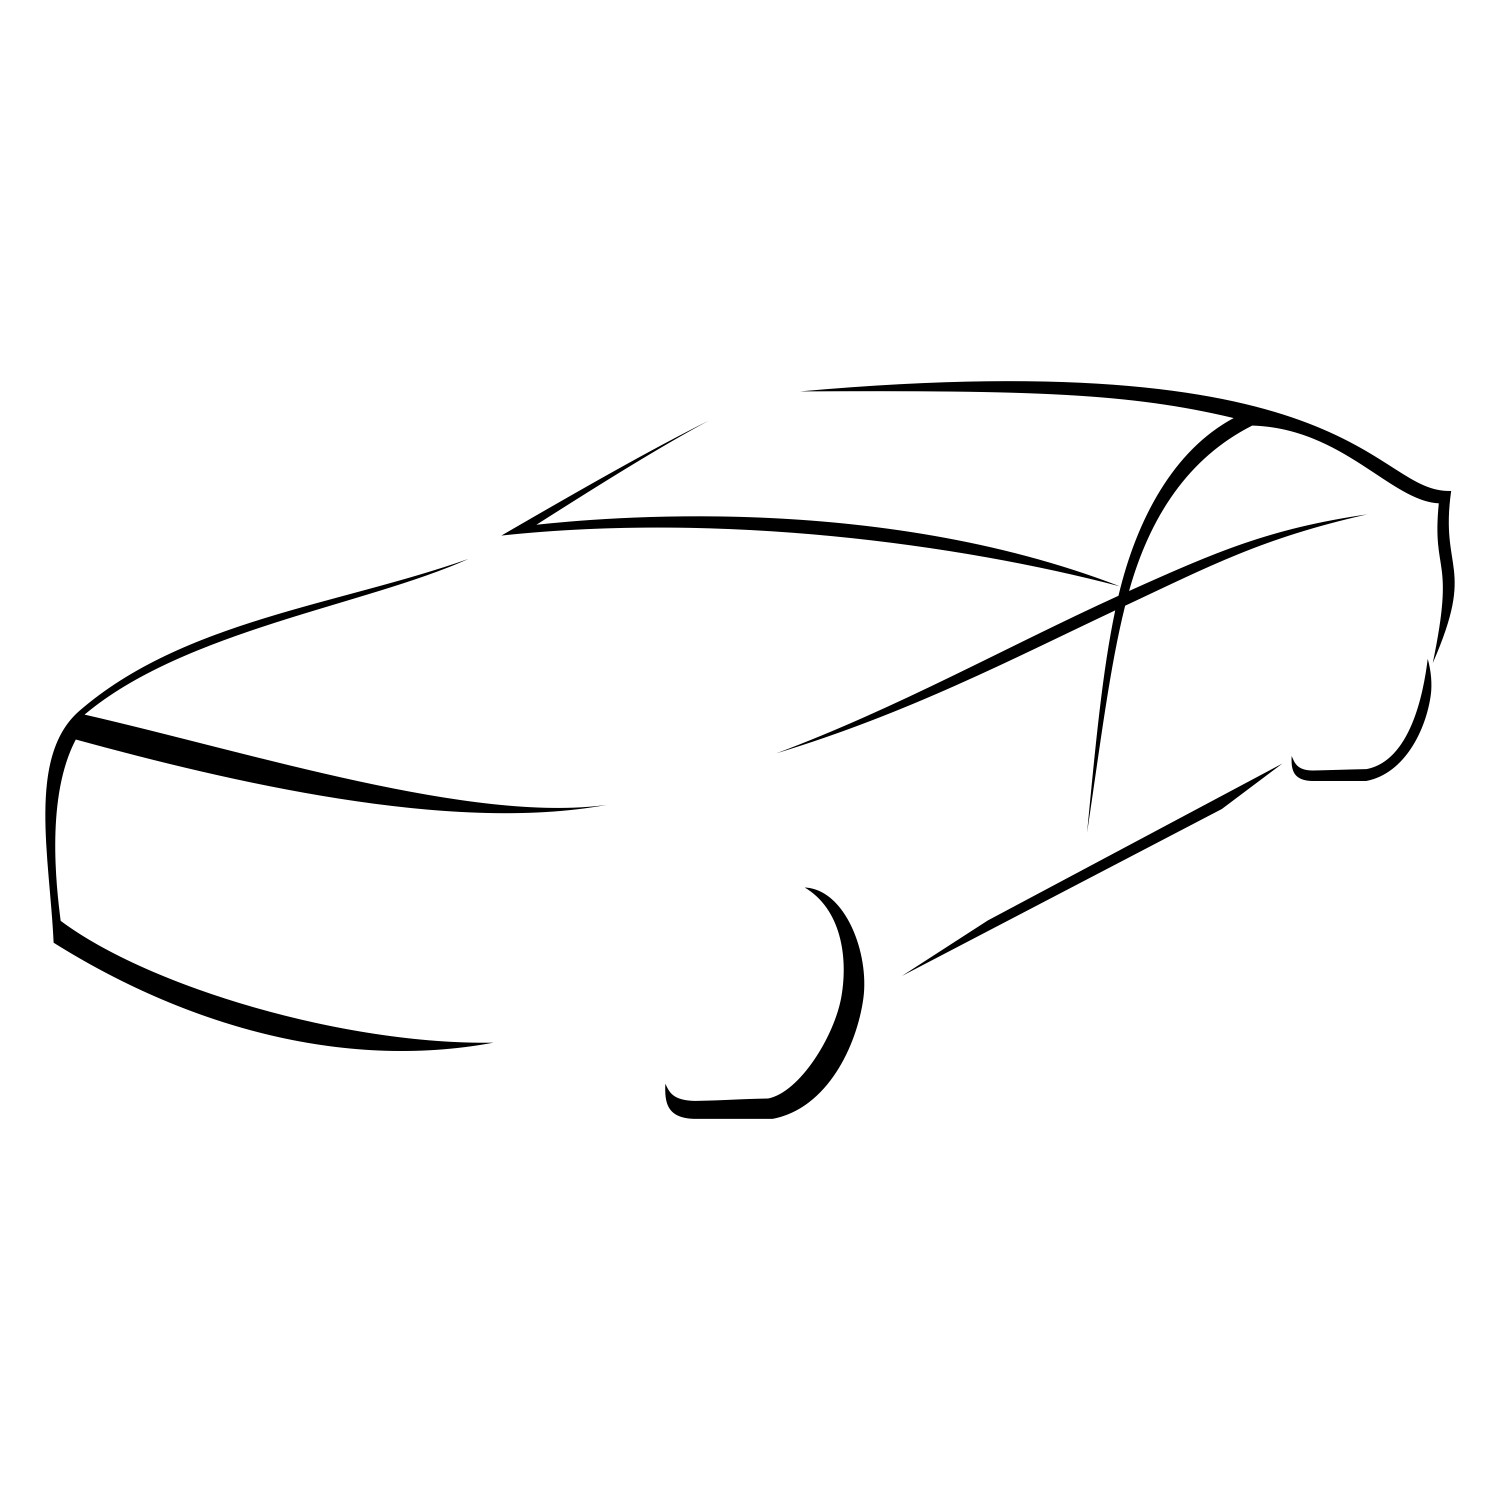 1500x1500 Vector For Free Use Car Silhouette Within Png Transitionsfv